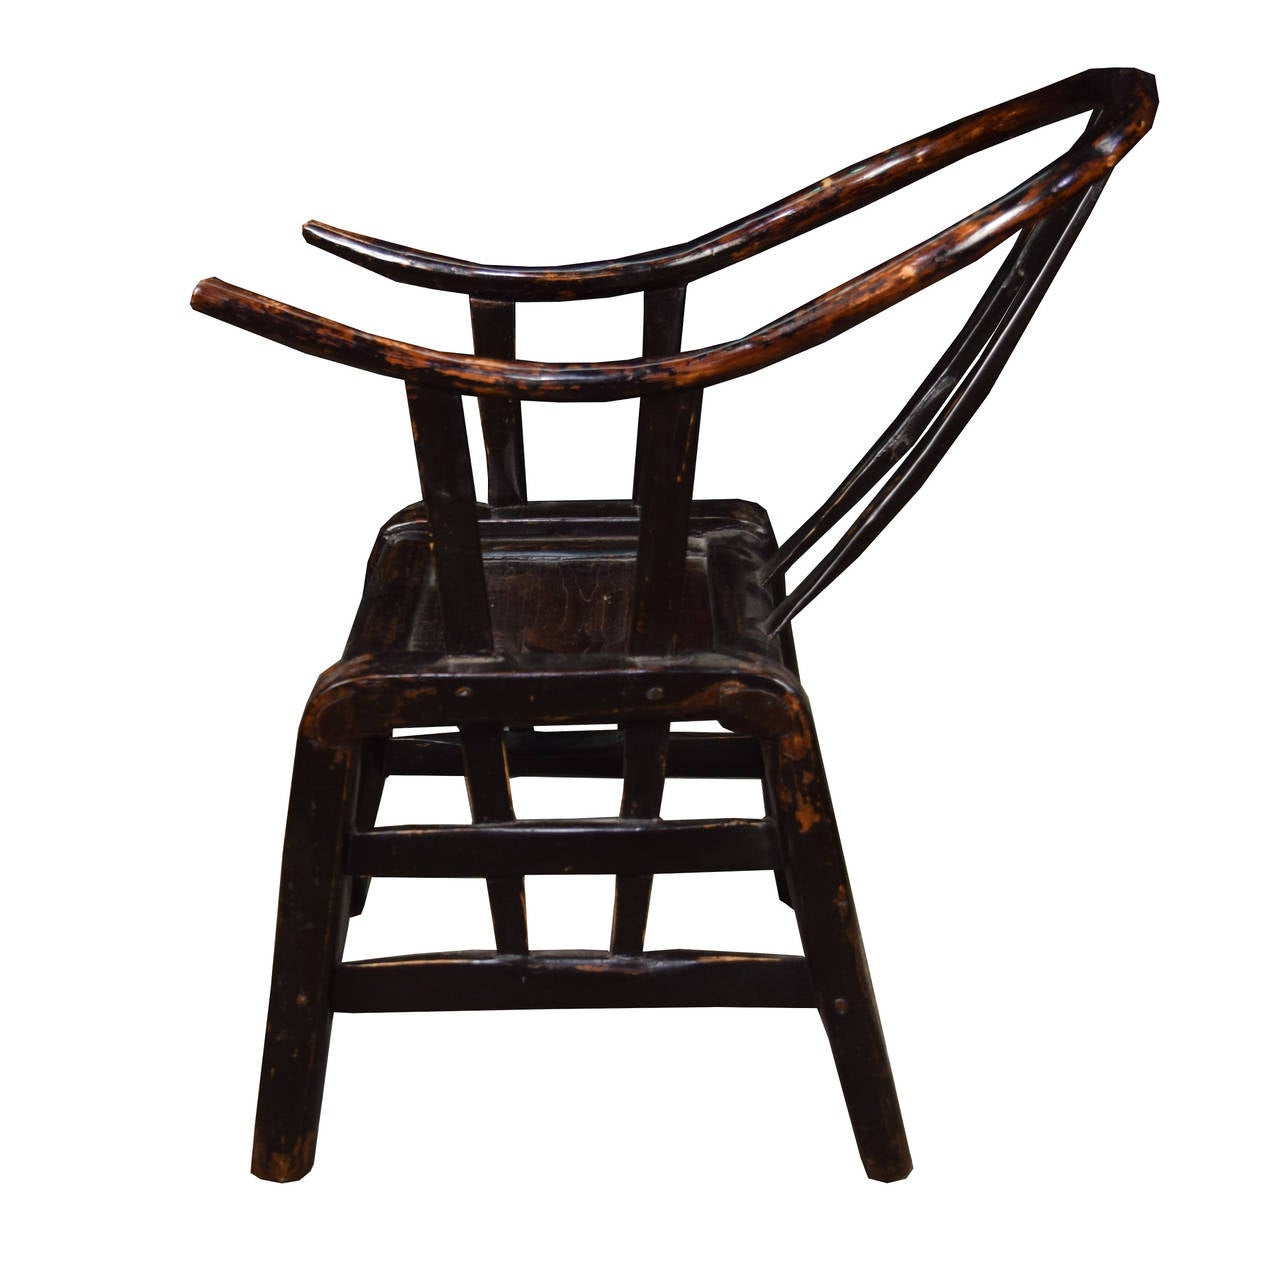 Pair of 19th century chinese petite chairs for sale at 1stdibs for Asian chairs for sale